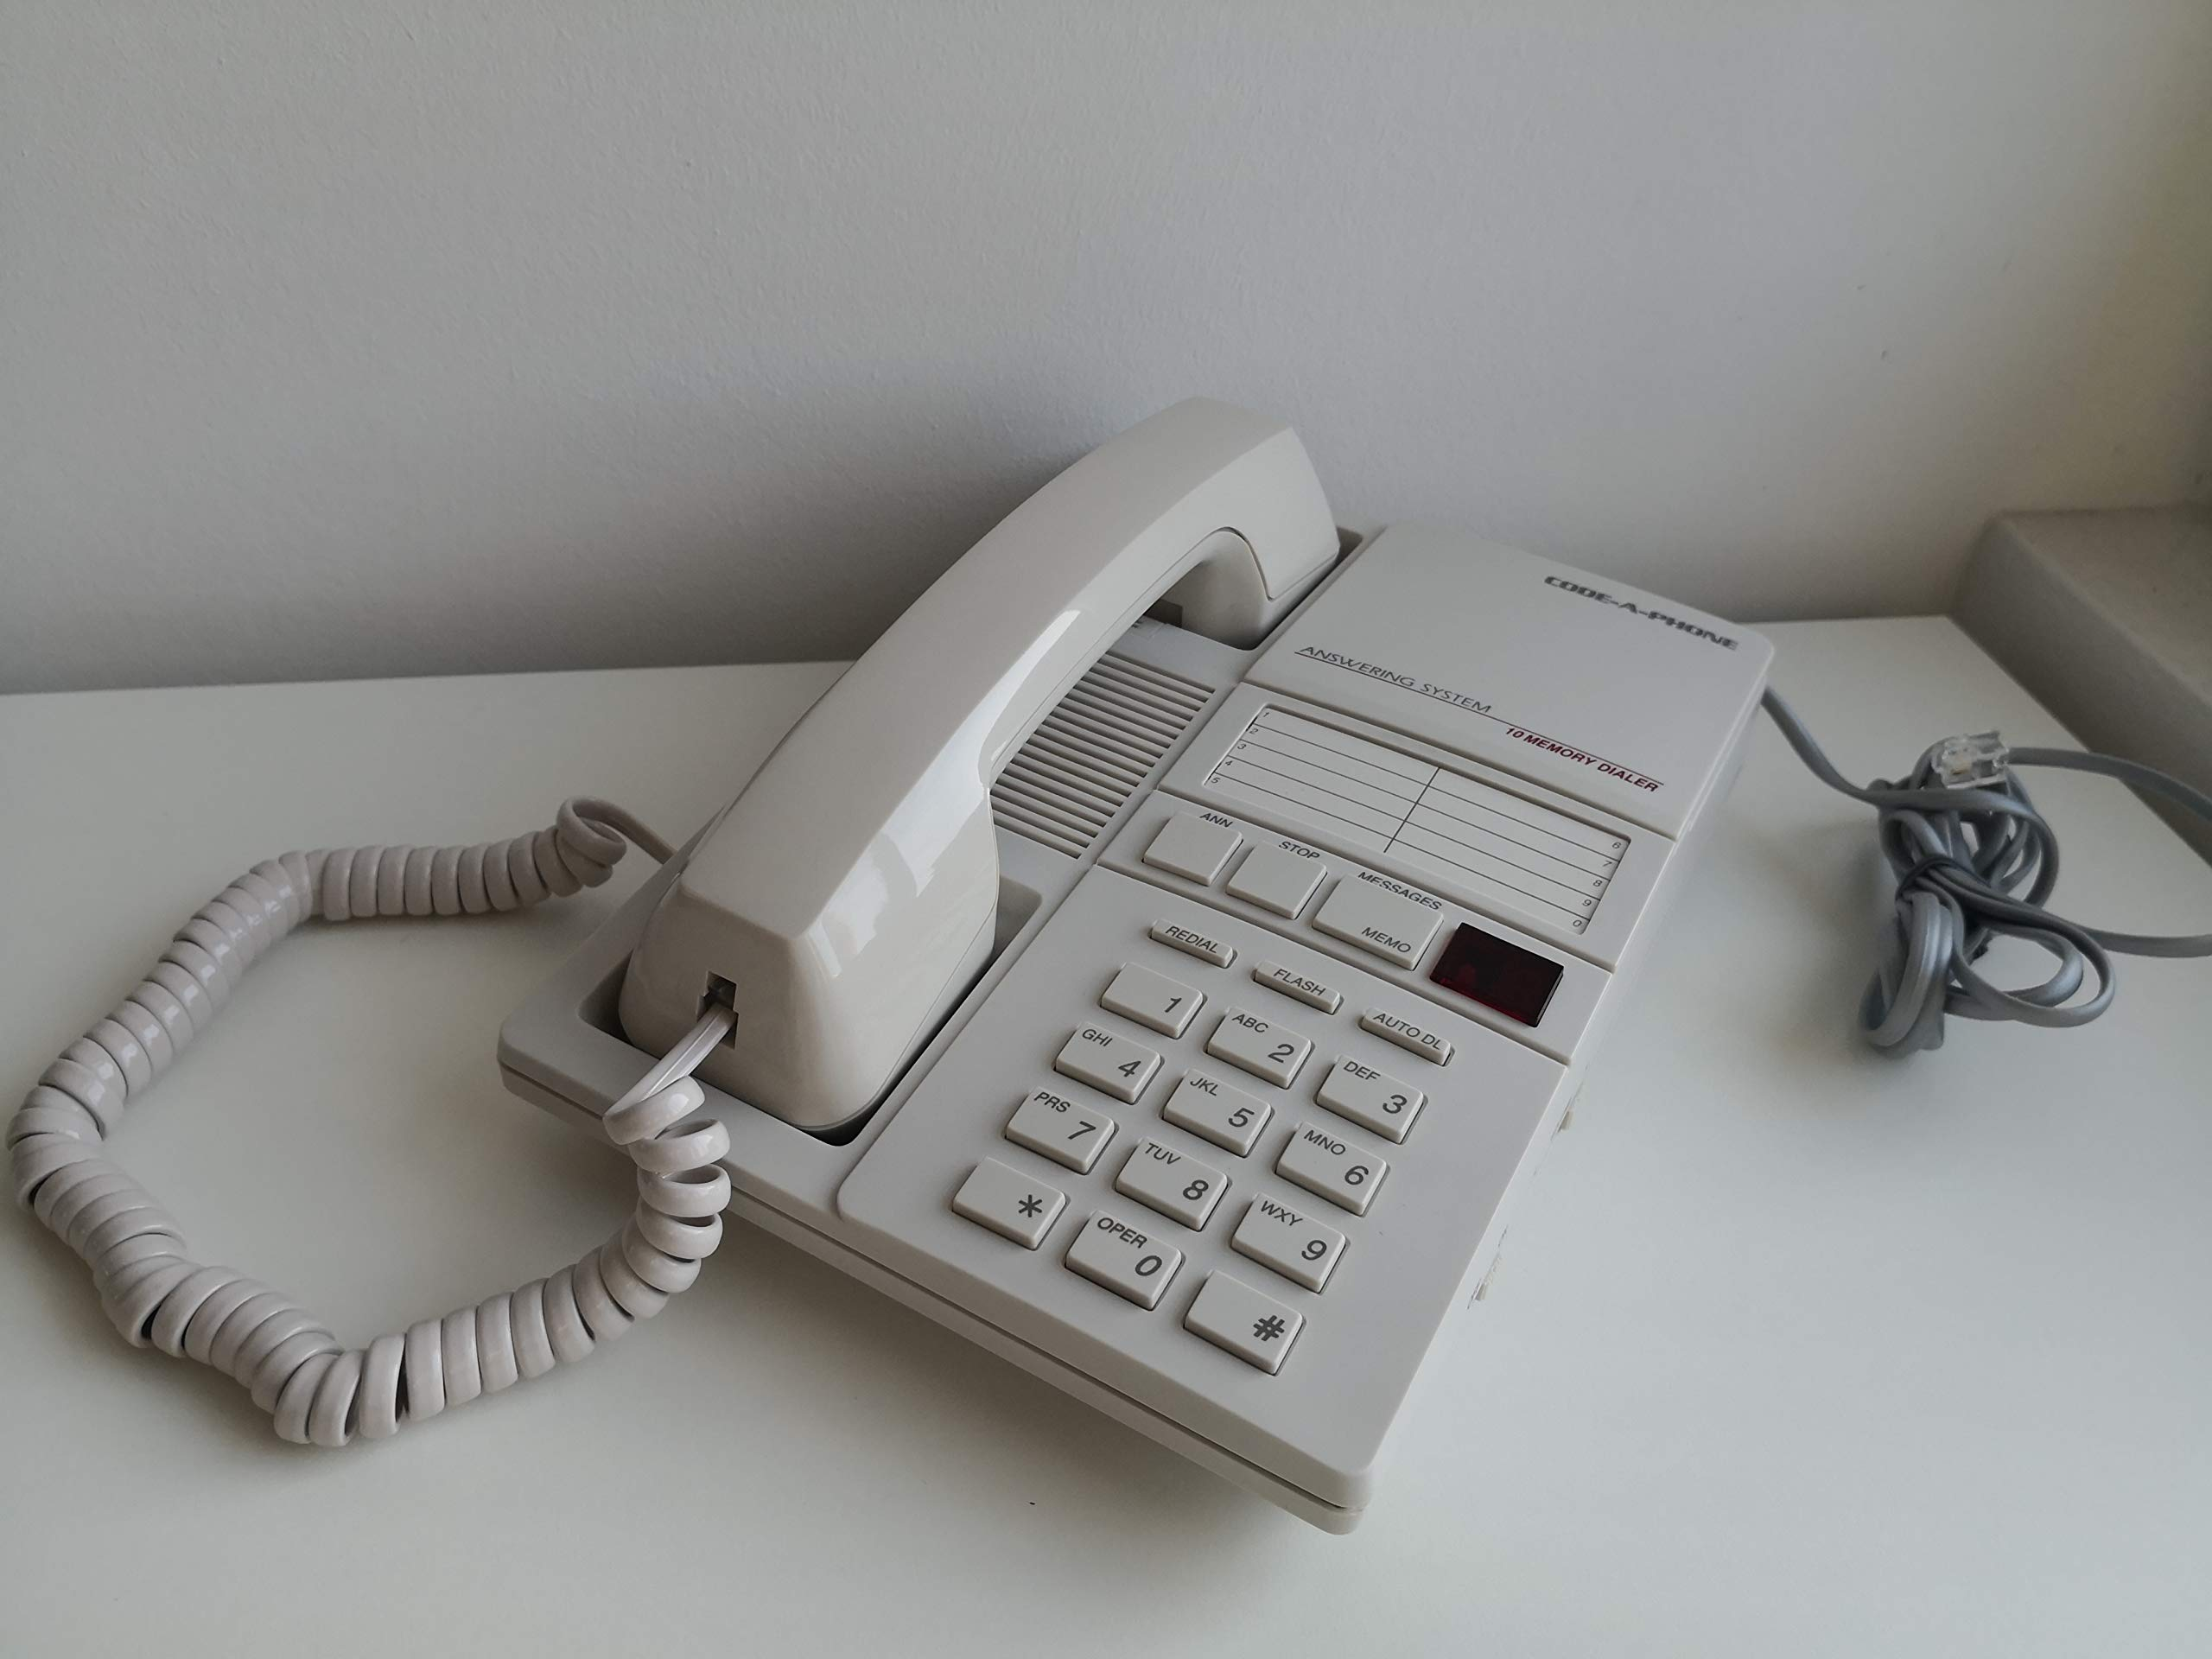 Code-A-Phone 1850 analogue telephone and integrated answer machine with microcassette.